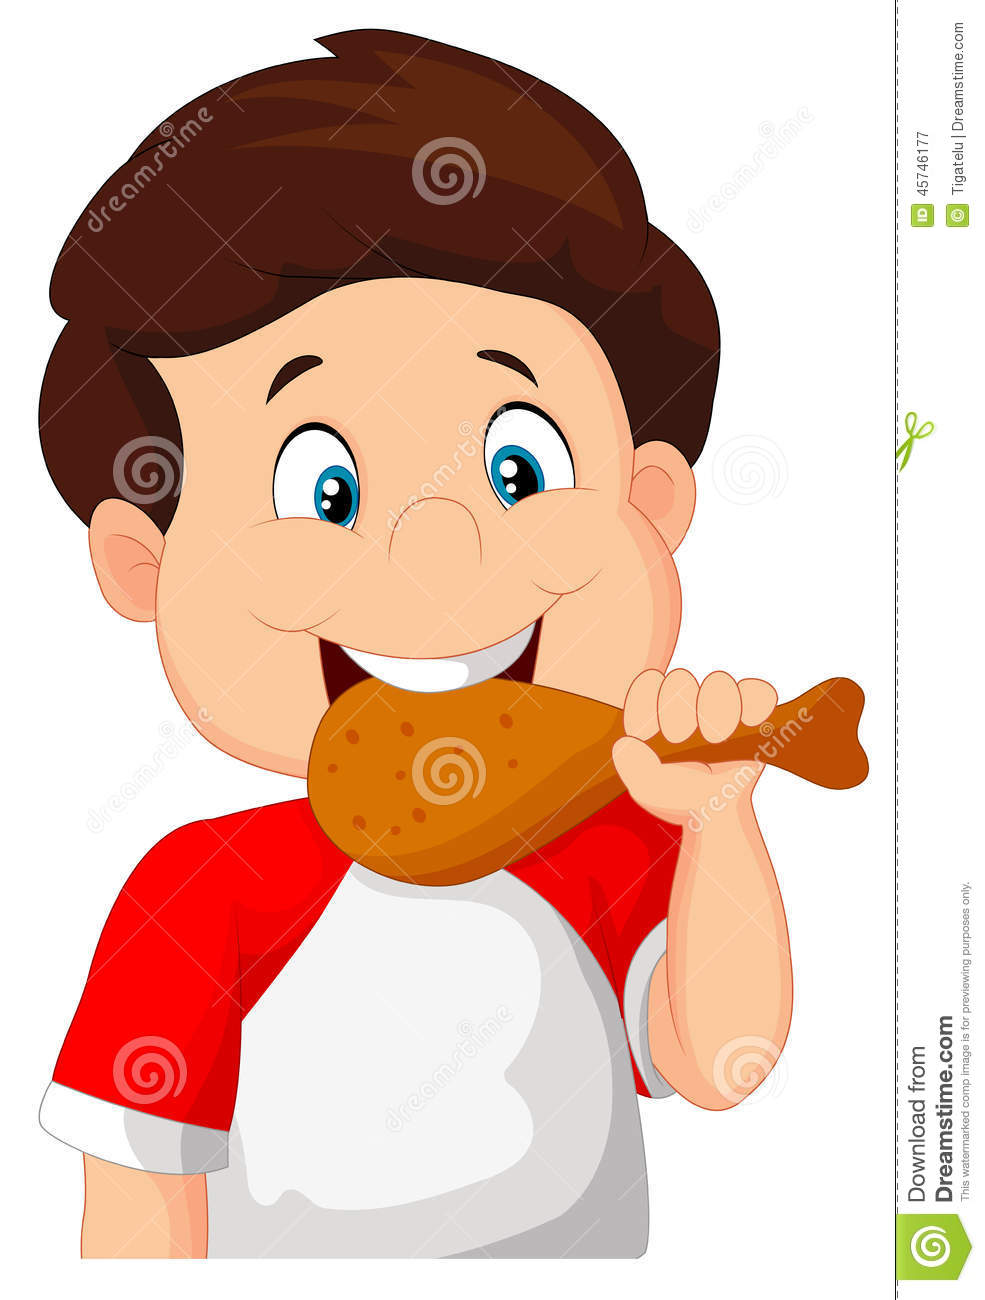 Boy eating dinner clipart clip transparent download Eat Supper Cliparts | Free download best Eat Supper Cliparts on ... clip transparent download